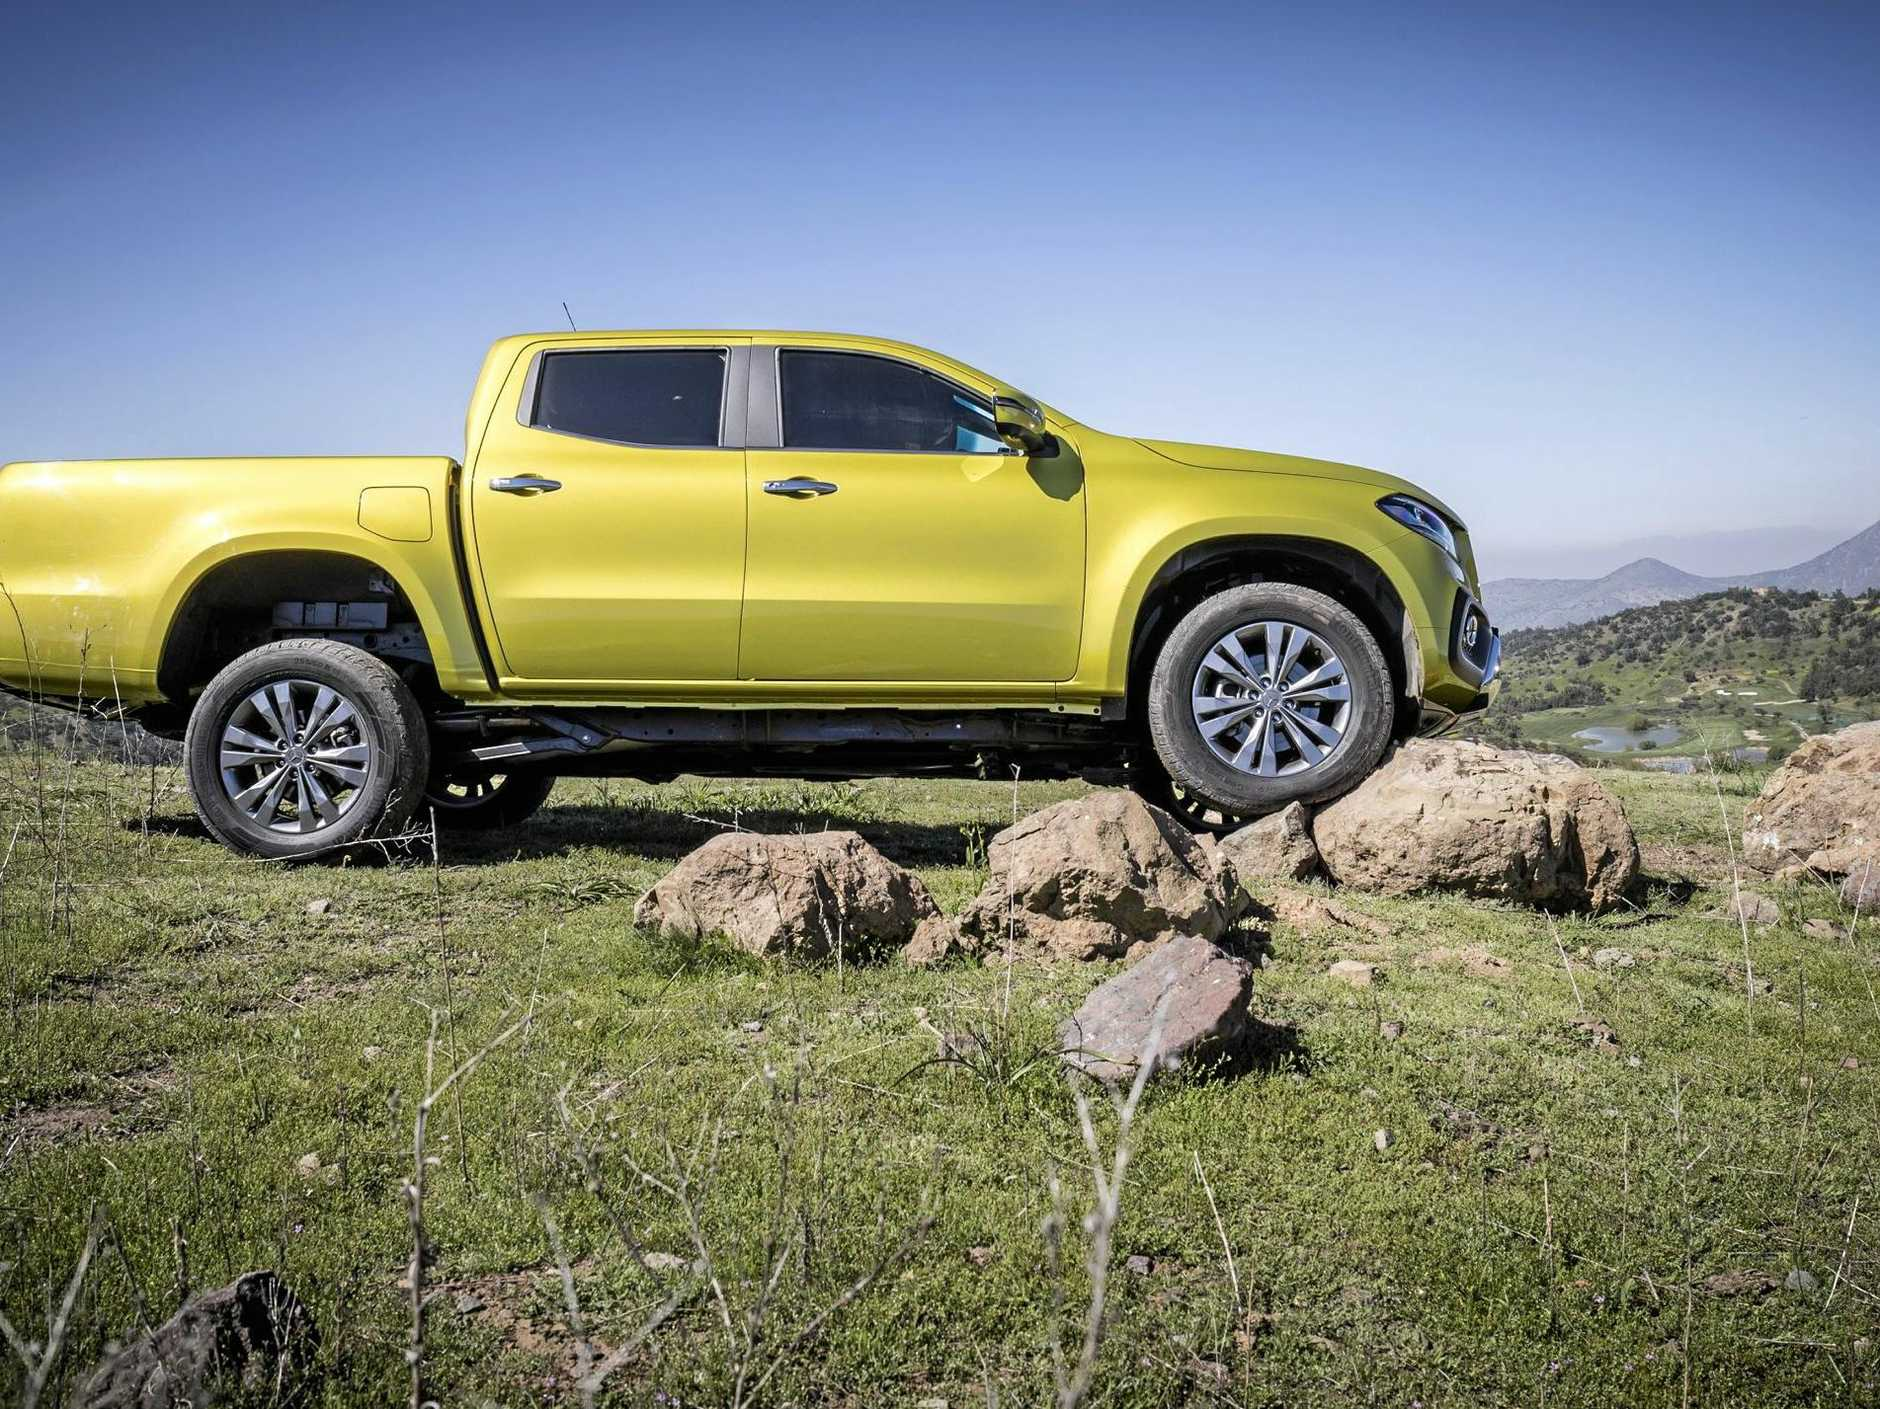 The Mercedes-Benz X-Class goes on sale in Australia from early 2018.